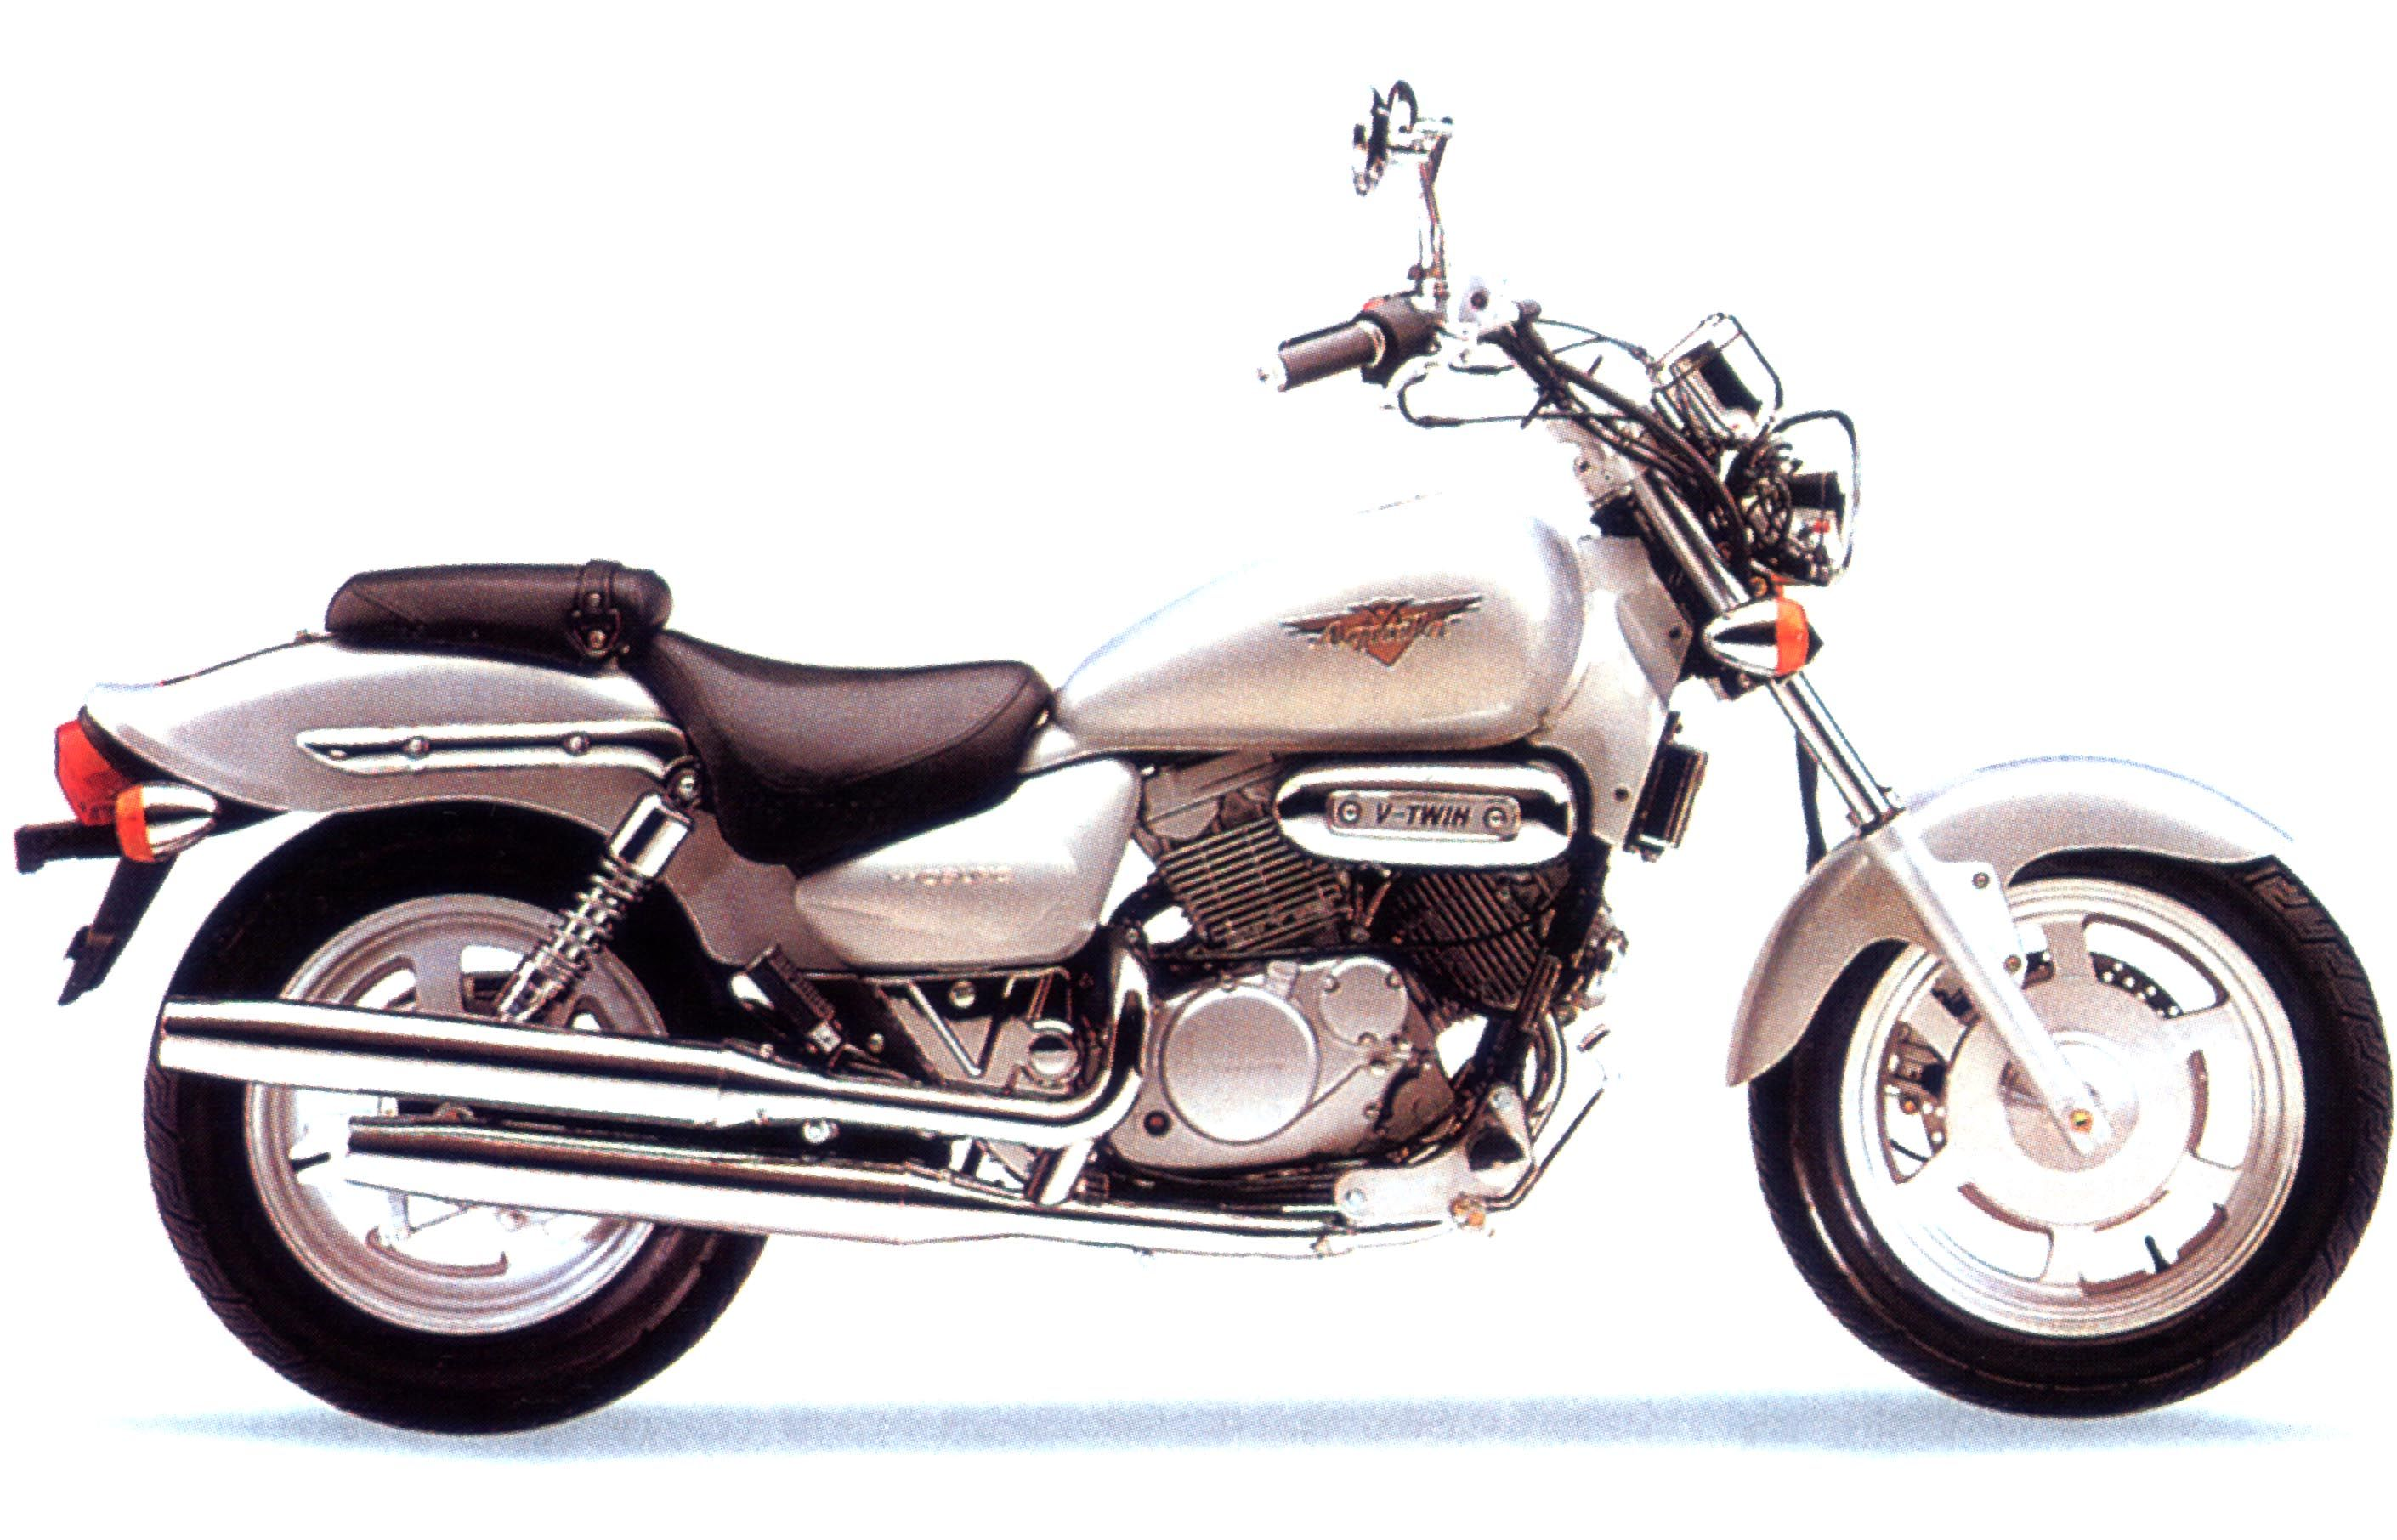 Click on image to download Hyosung Aquila 125 GV125 Service Repair Workshop  Manual Downland